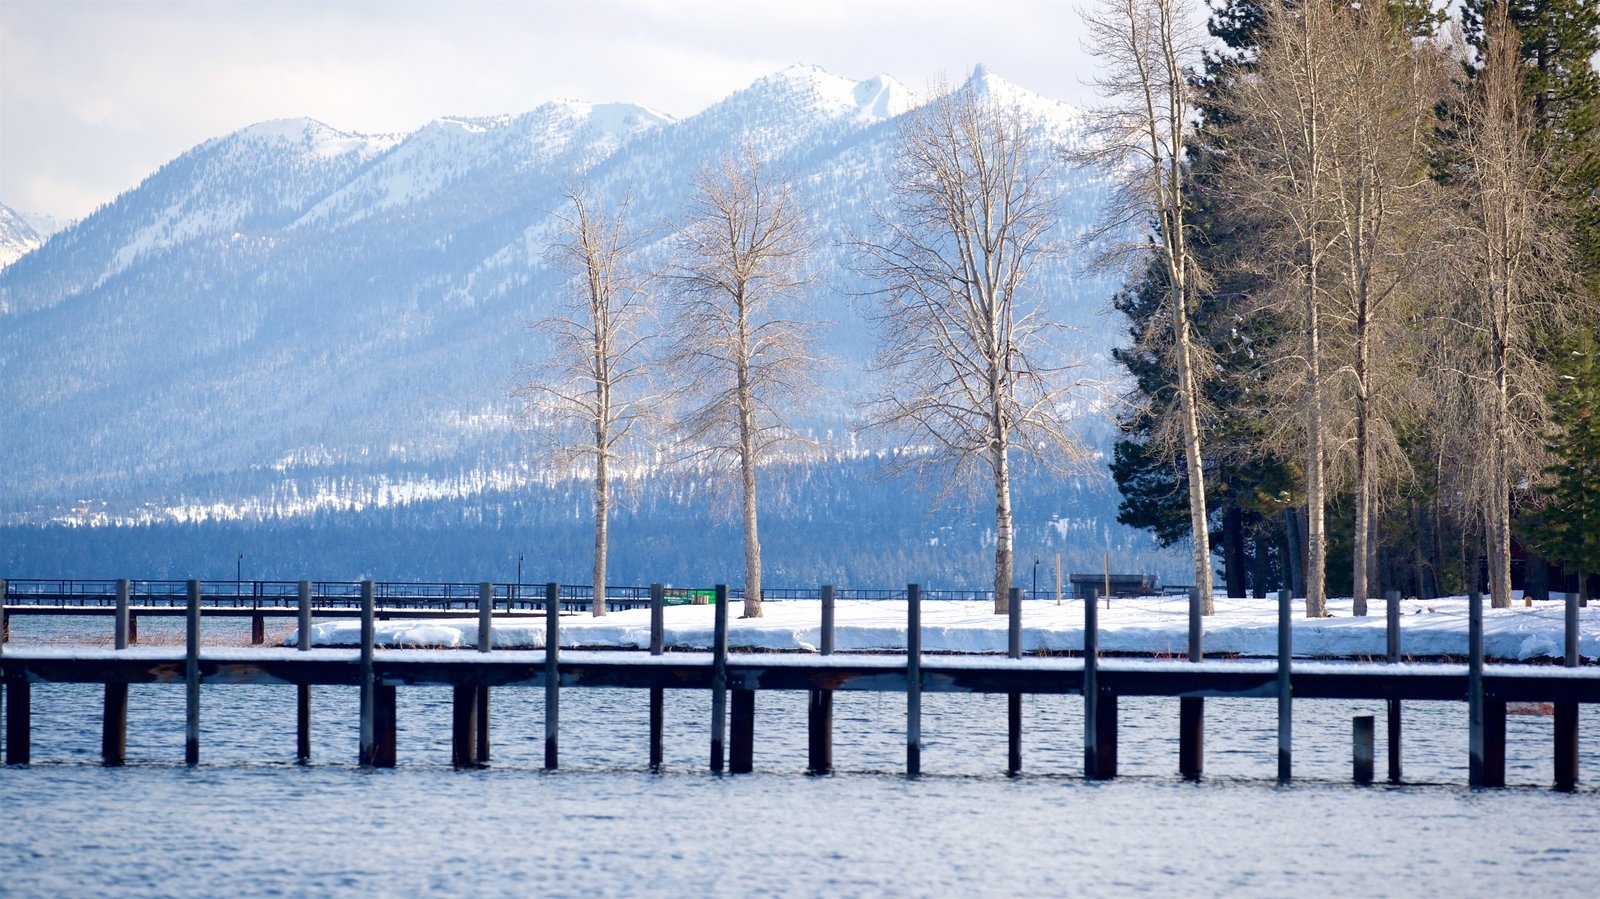 Tahoe City featuring mountains, a river or creek and snow